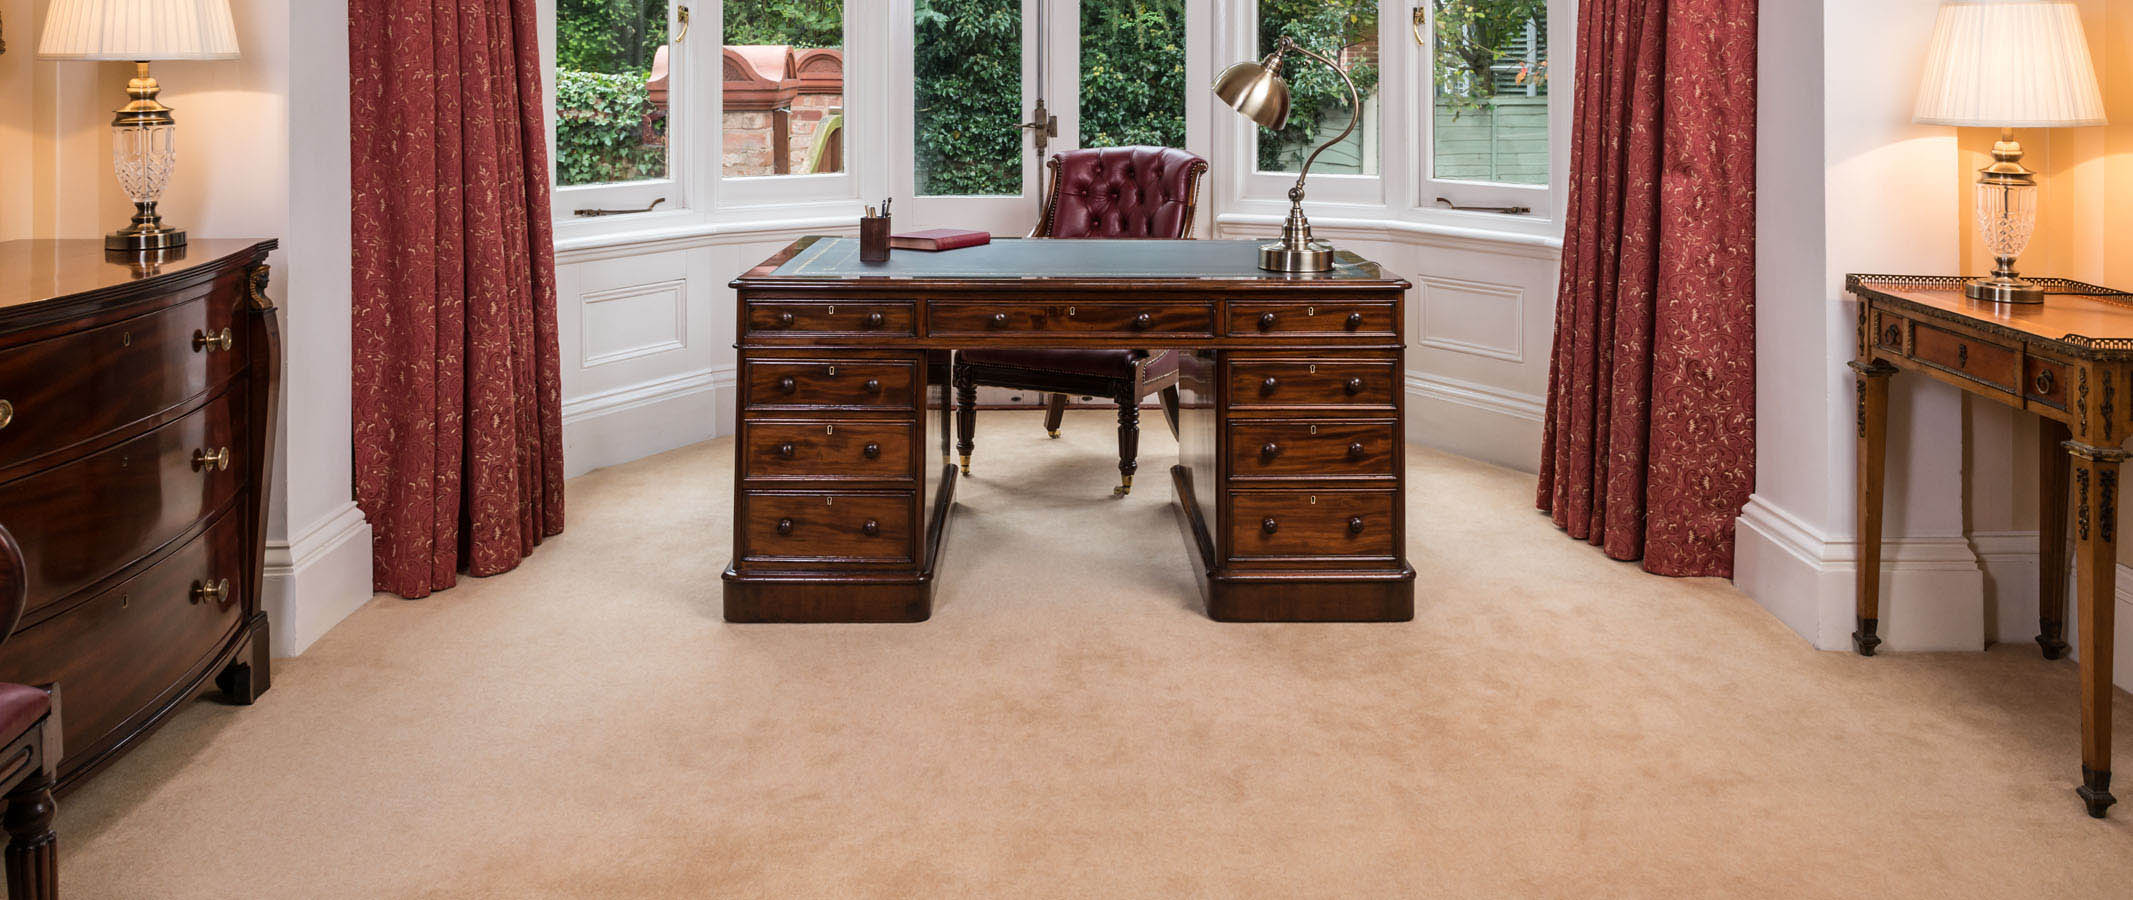 Antique Desks, Partners Desks, Desk Chairs